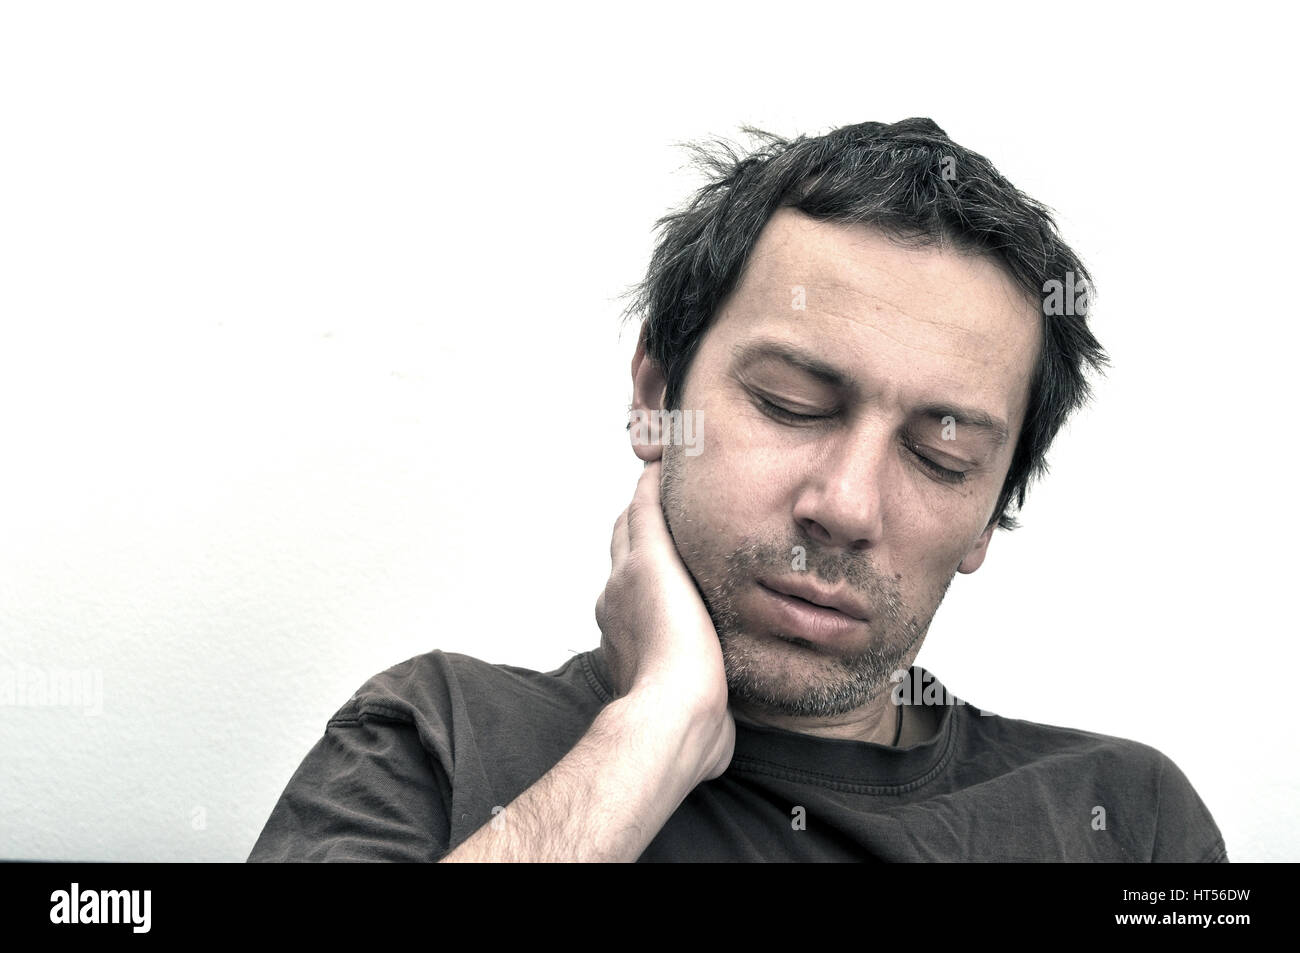 Young man suffering from toothache, teeth pain, swollen face - Stock Image